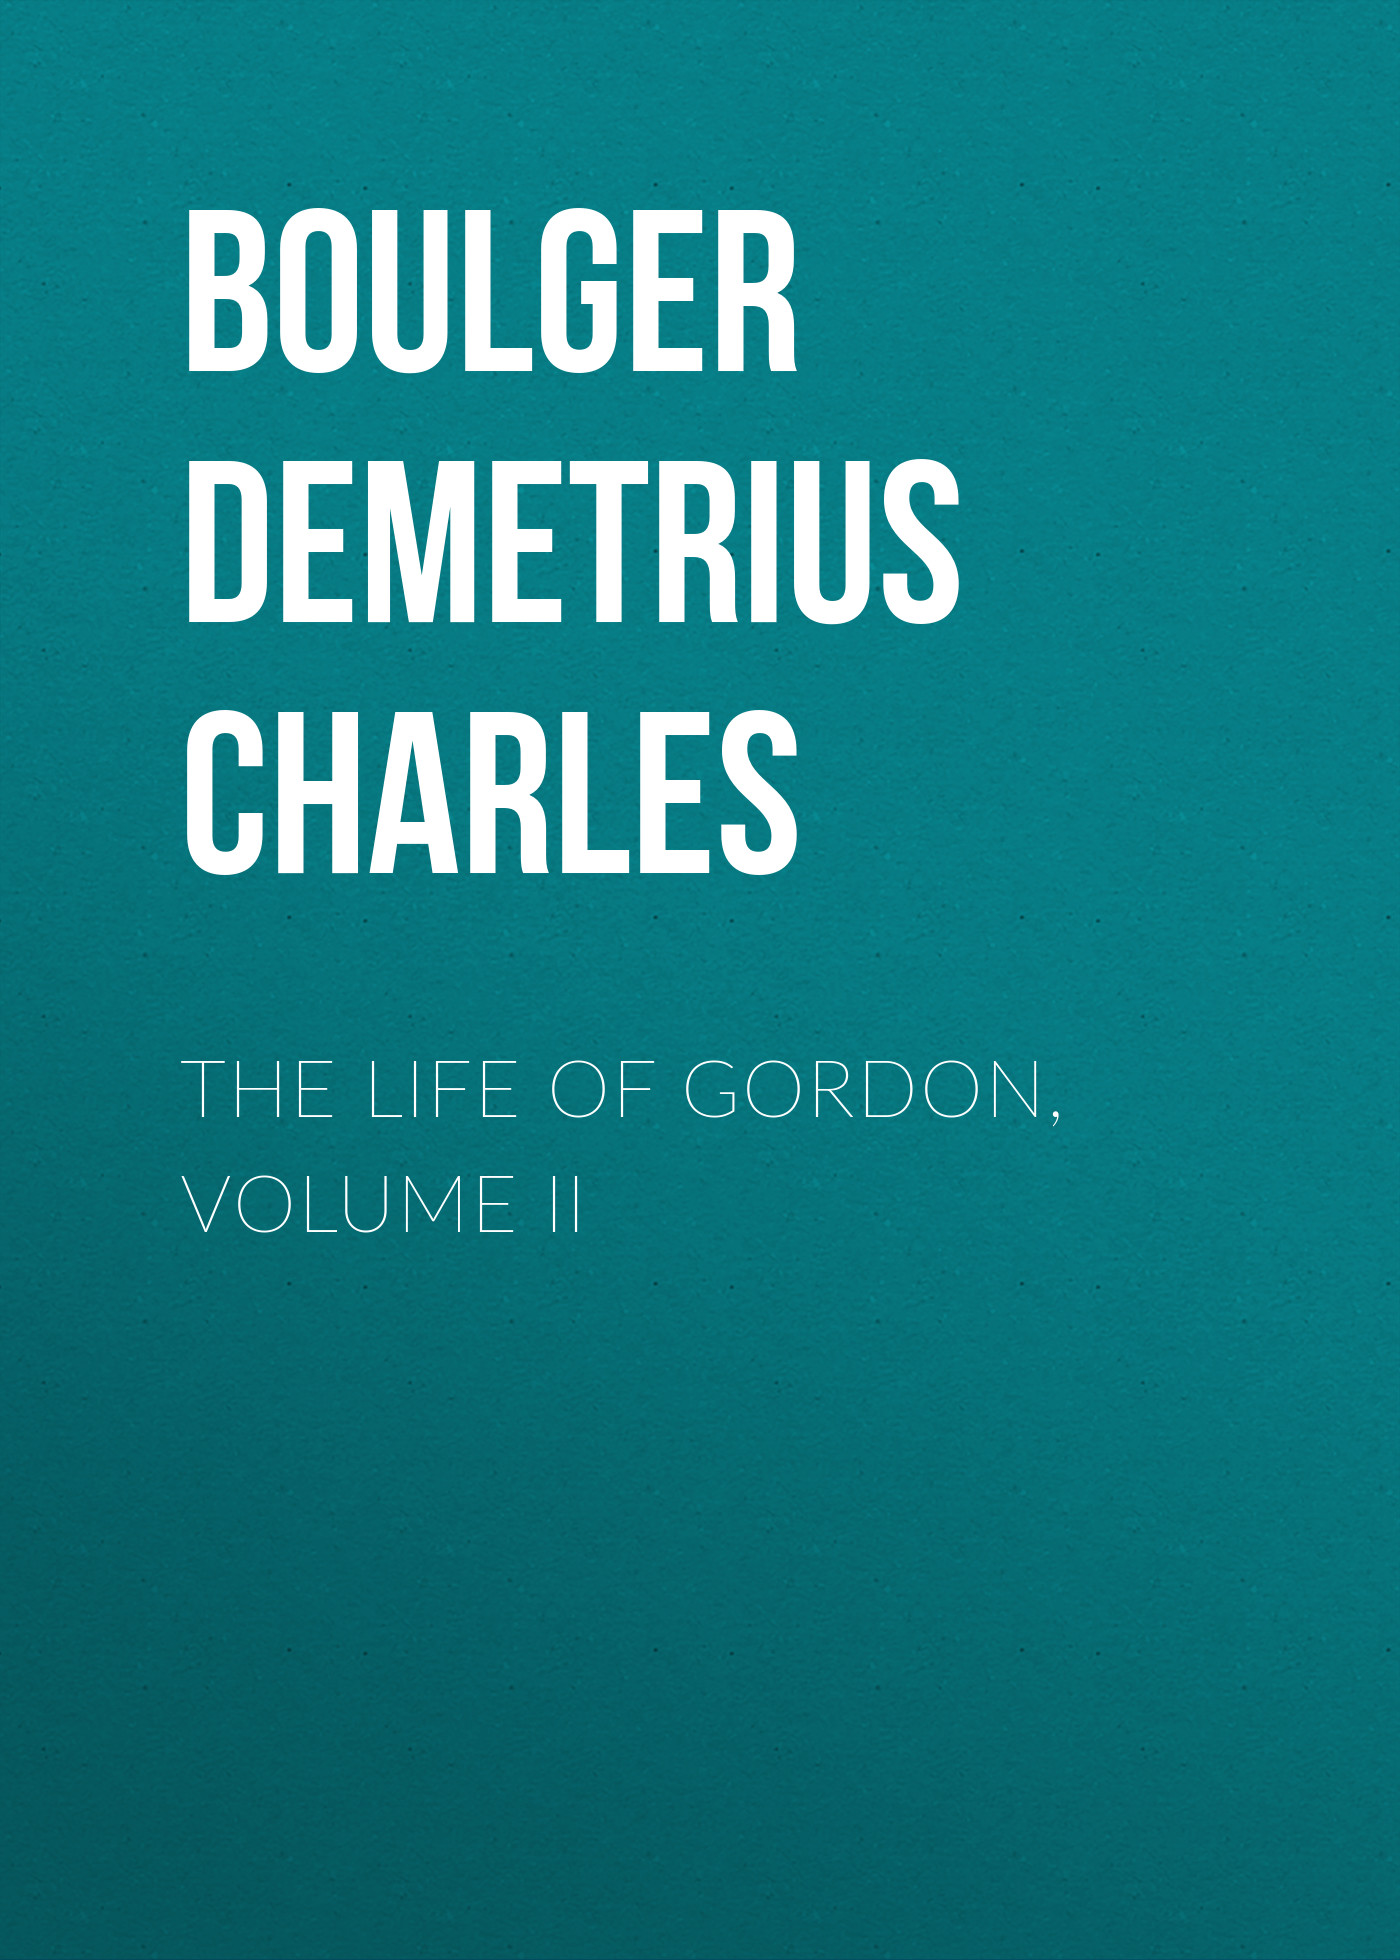 Boulger Demetrius Charles The Life of Gordon, Volume II charles dickens the life and adventures of martin chuzzlewit volume ii